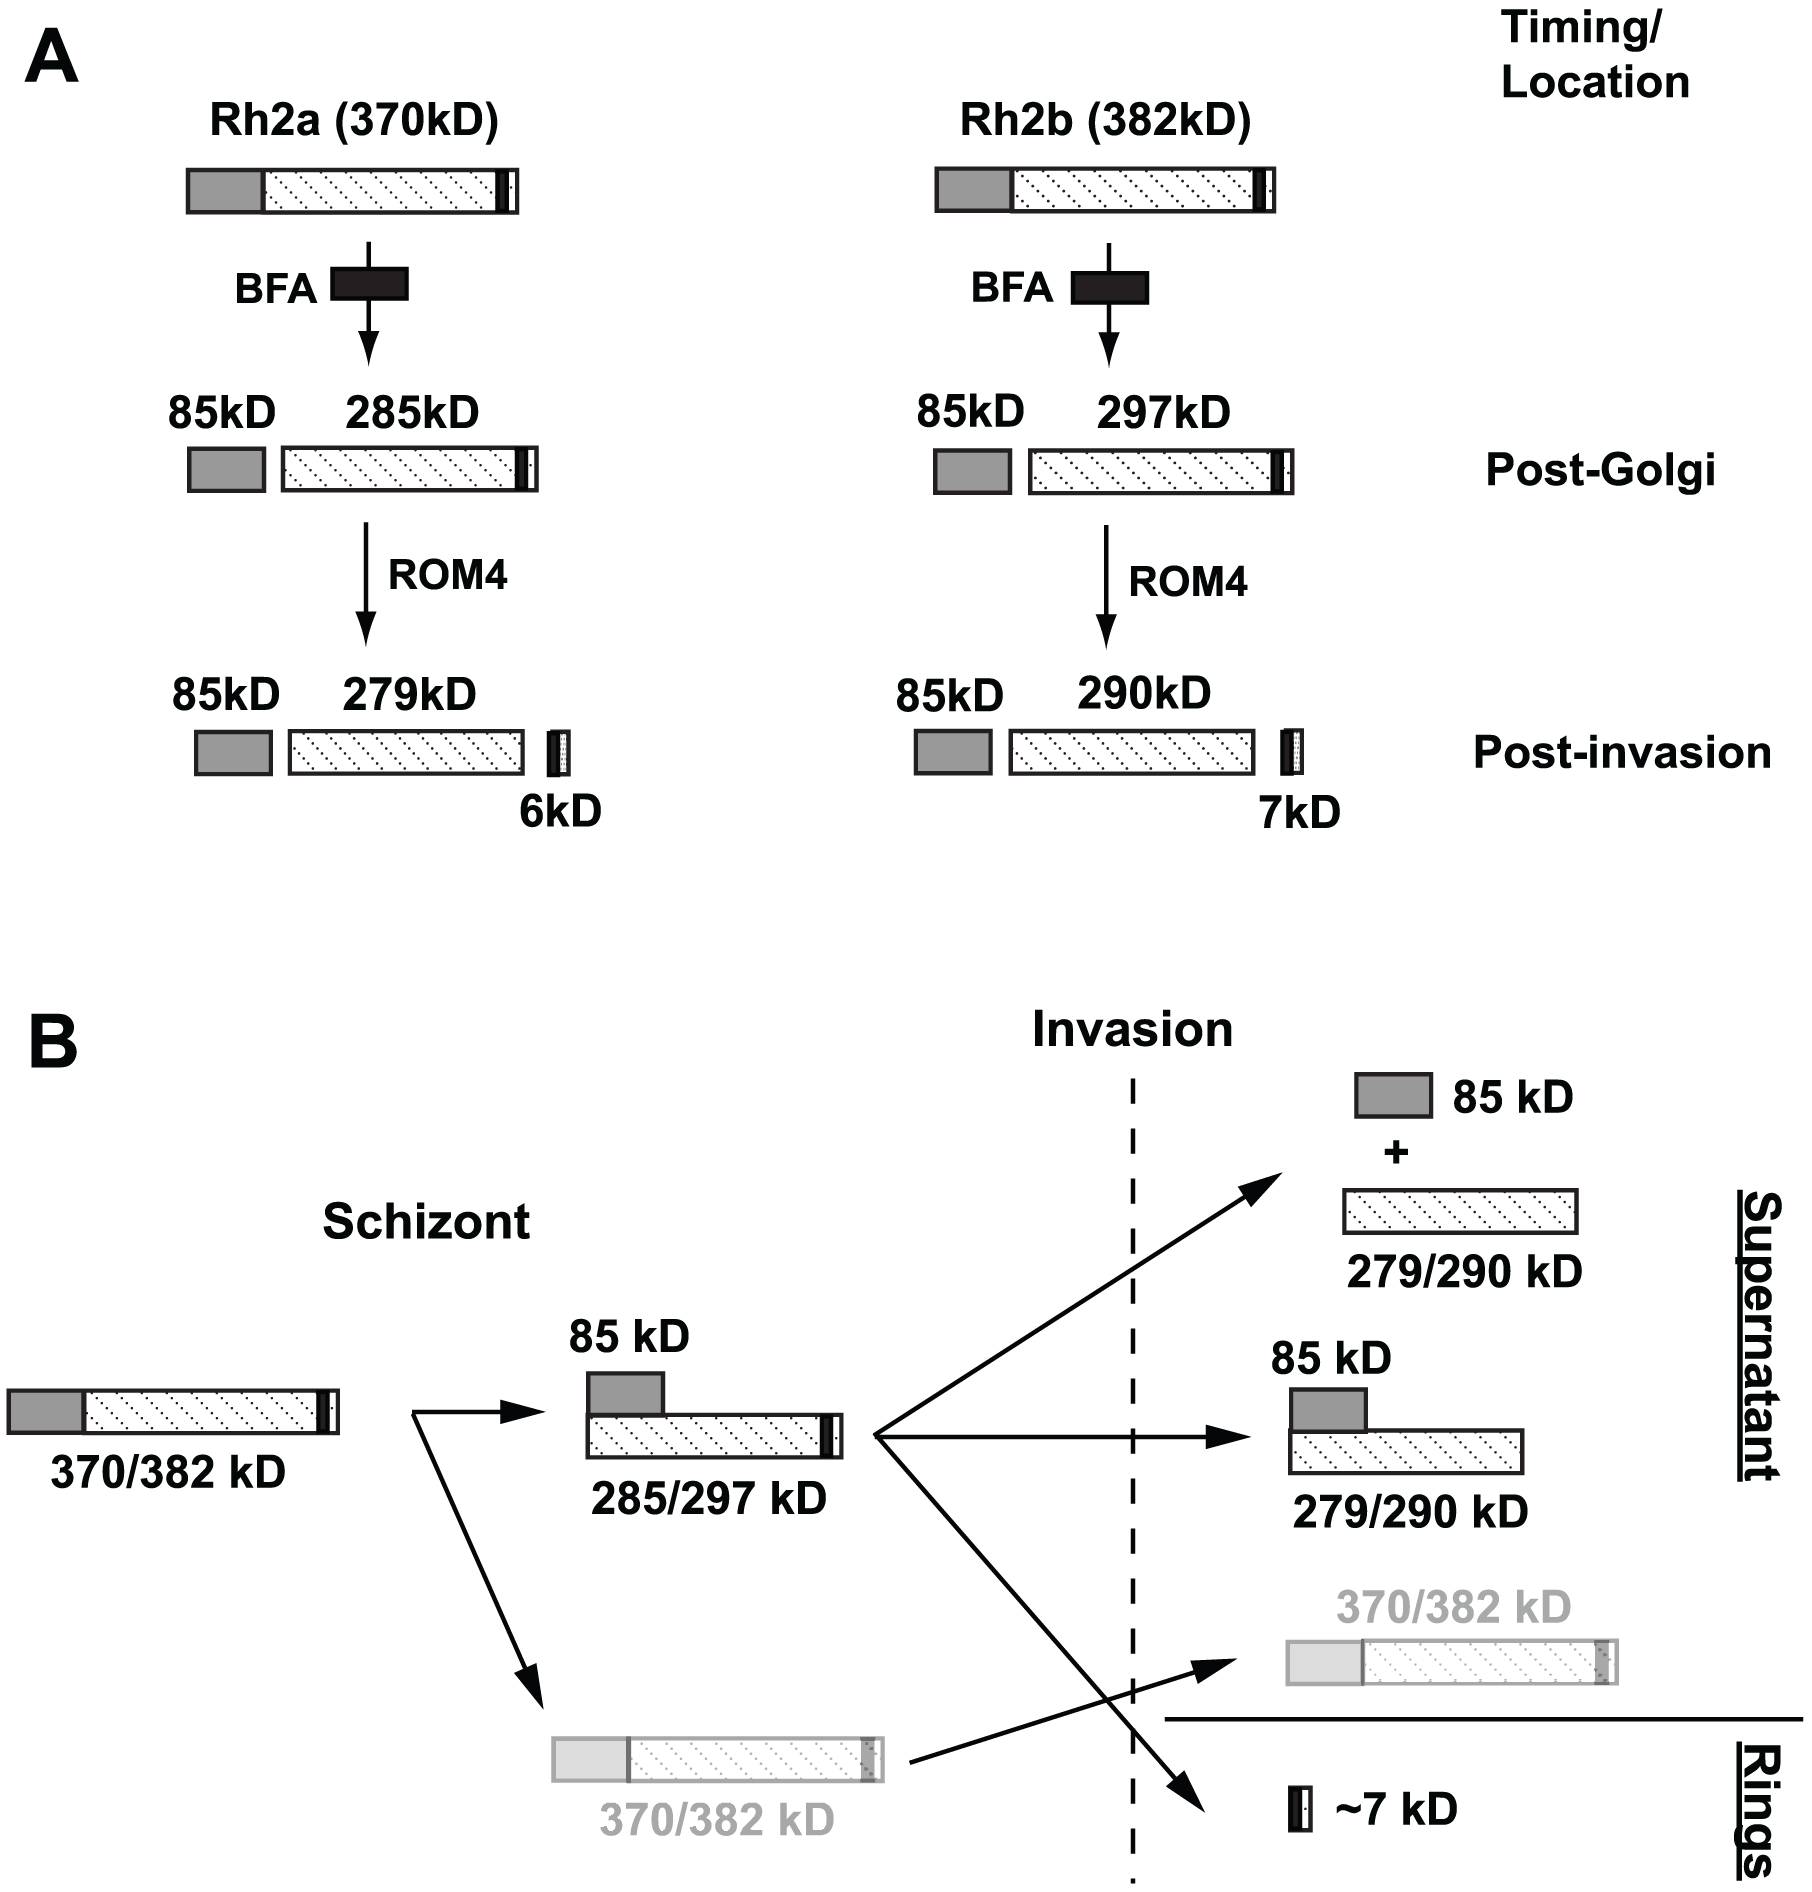 Schematic diagram illustrating post-Golgi and rhomboid processing of PfRh2a/2b proteins.